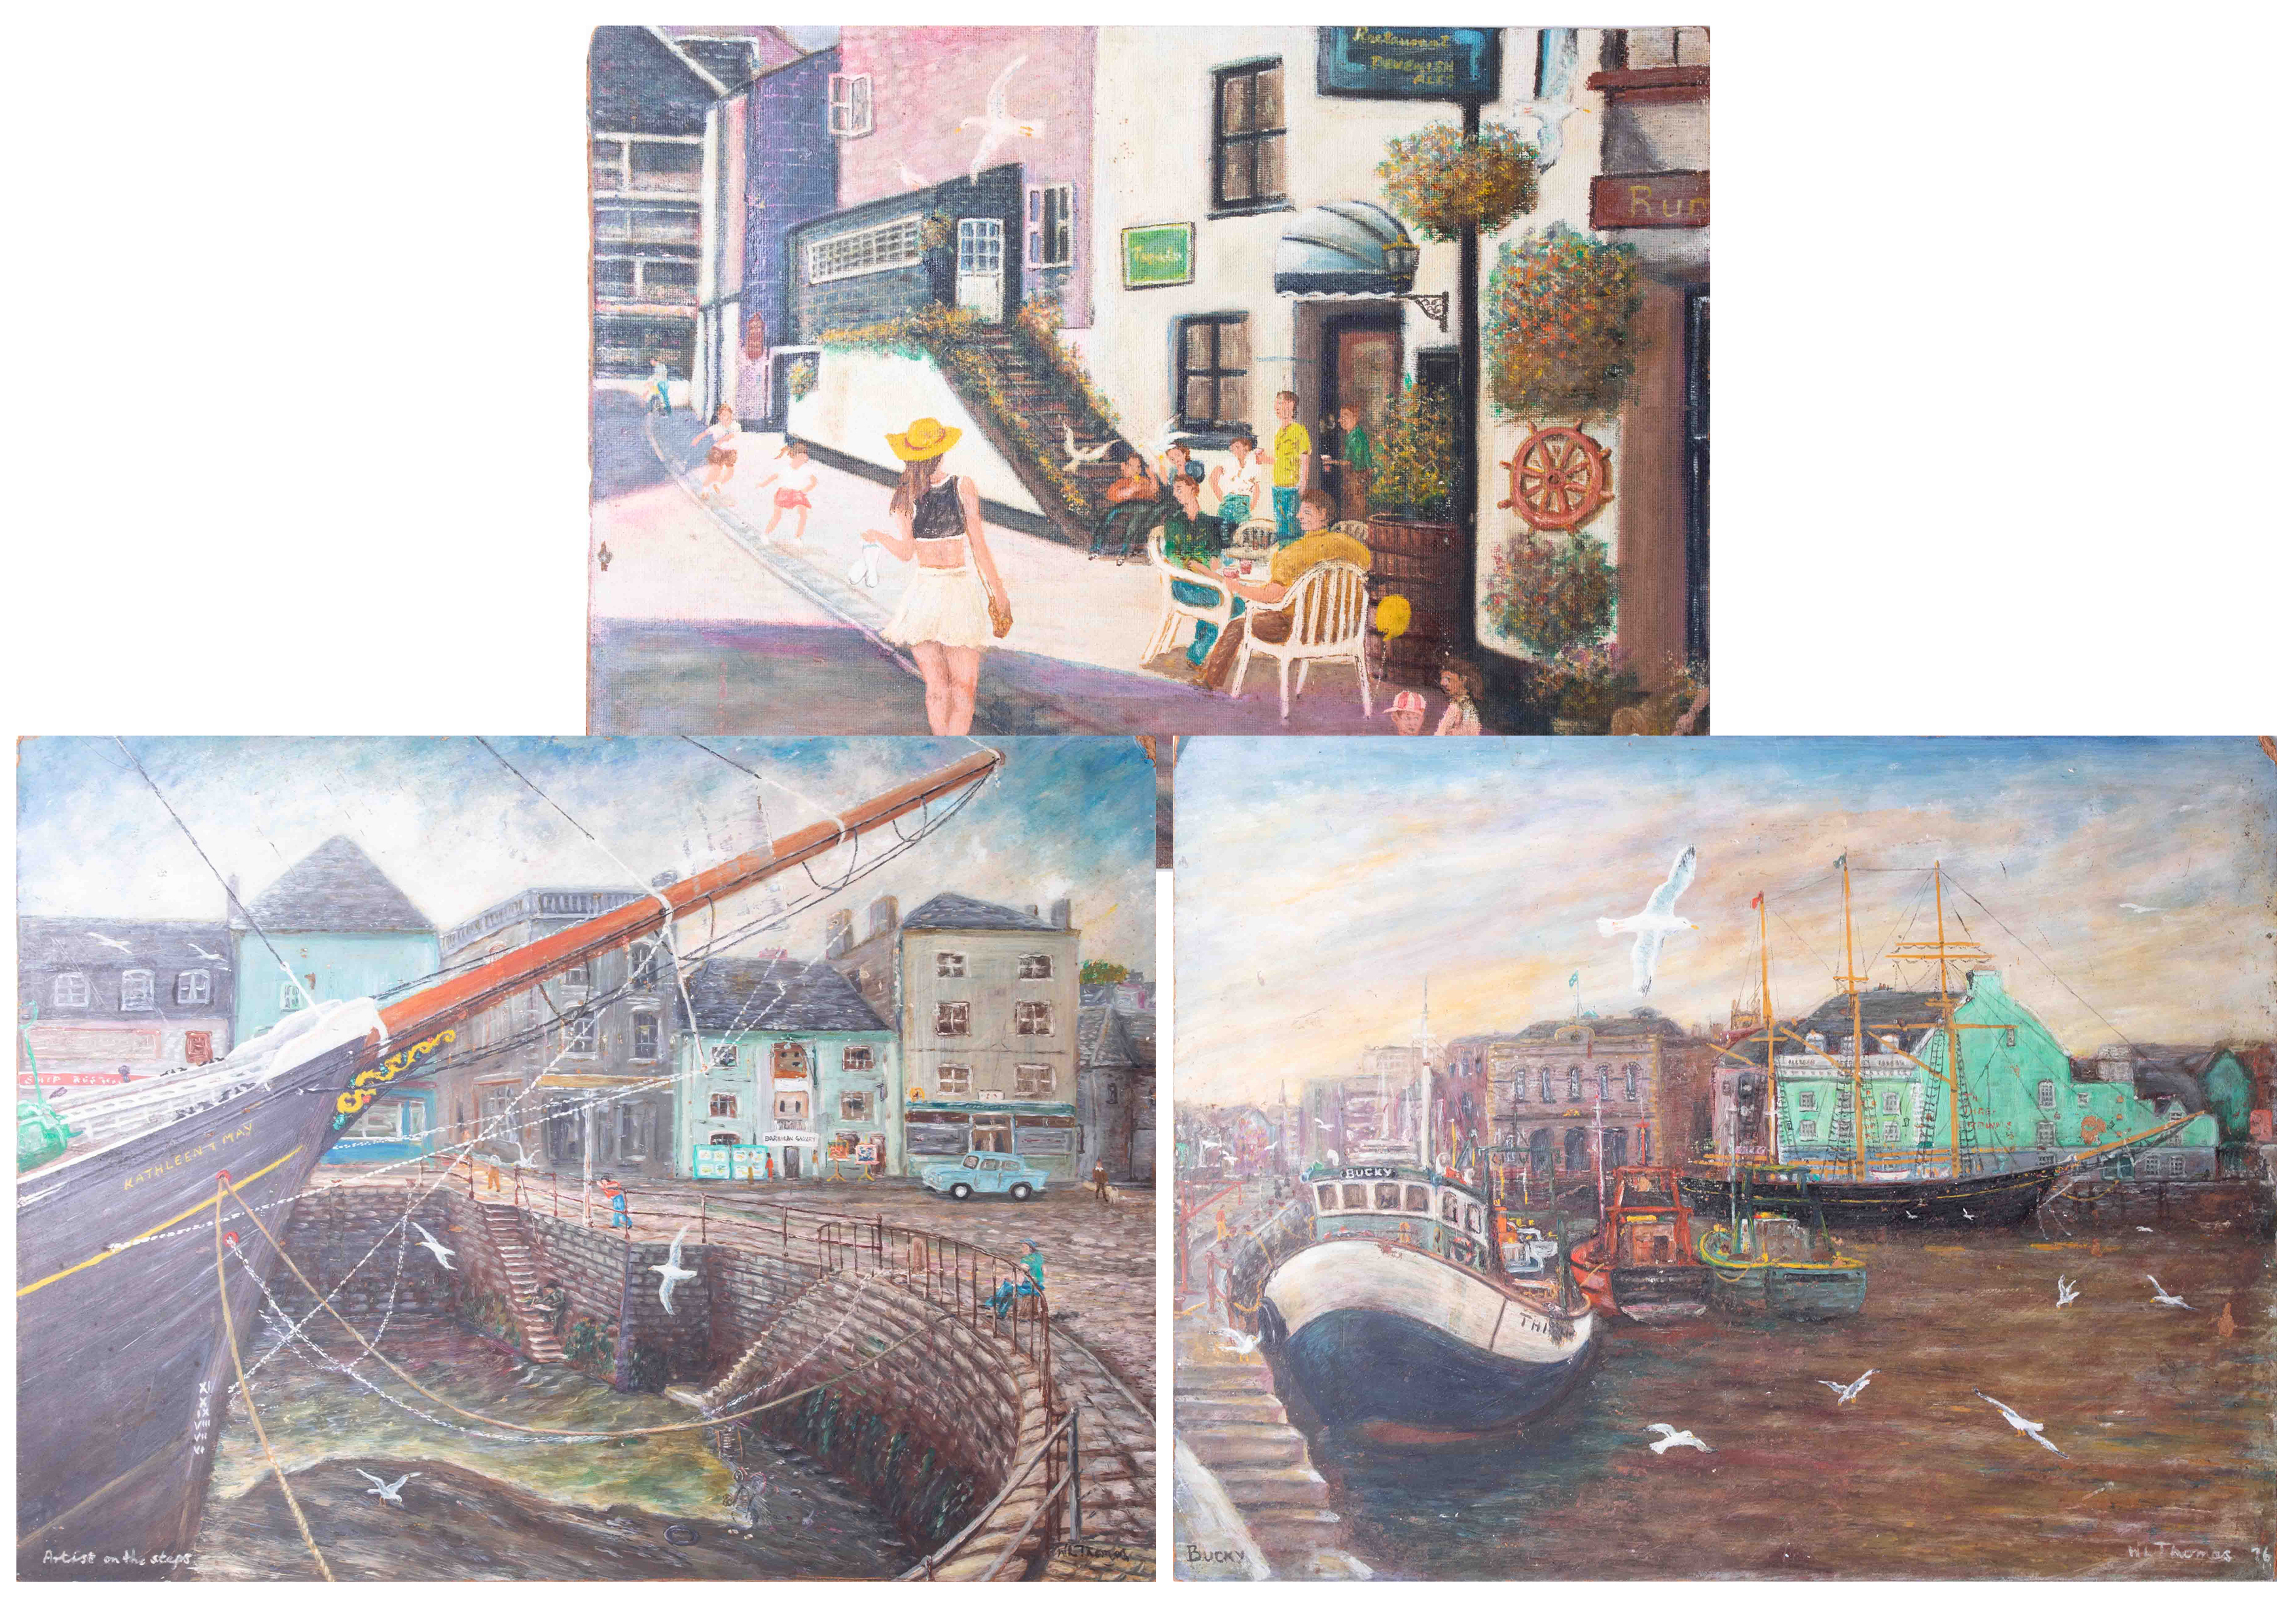 W.L.Thomas, oil on board titled 'Artist On The Steps, Sutton Harbour, Plymouth' also 'Bucky' with